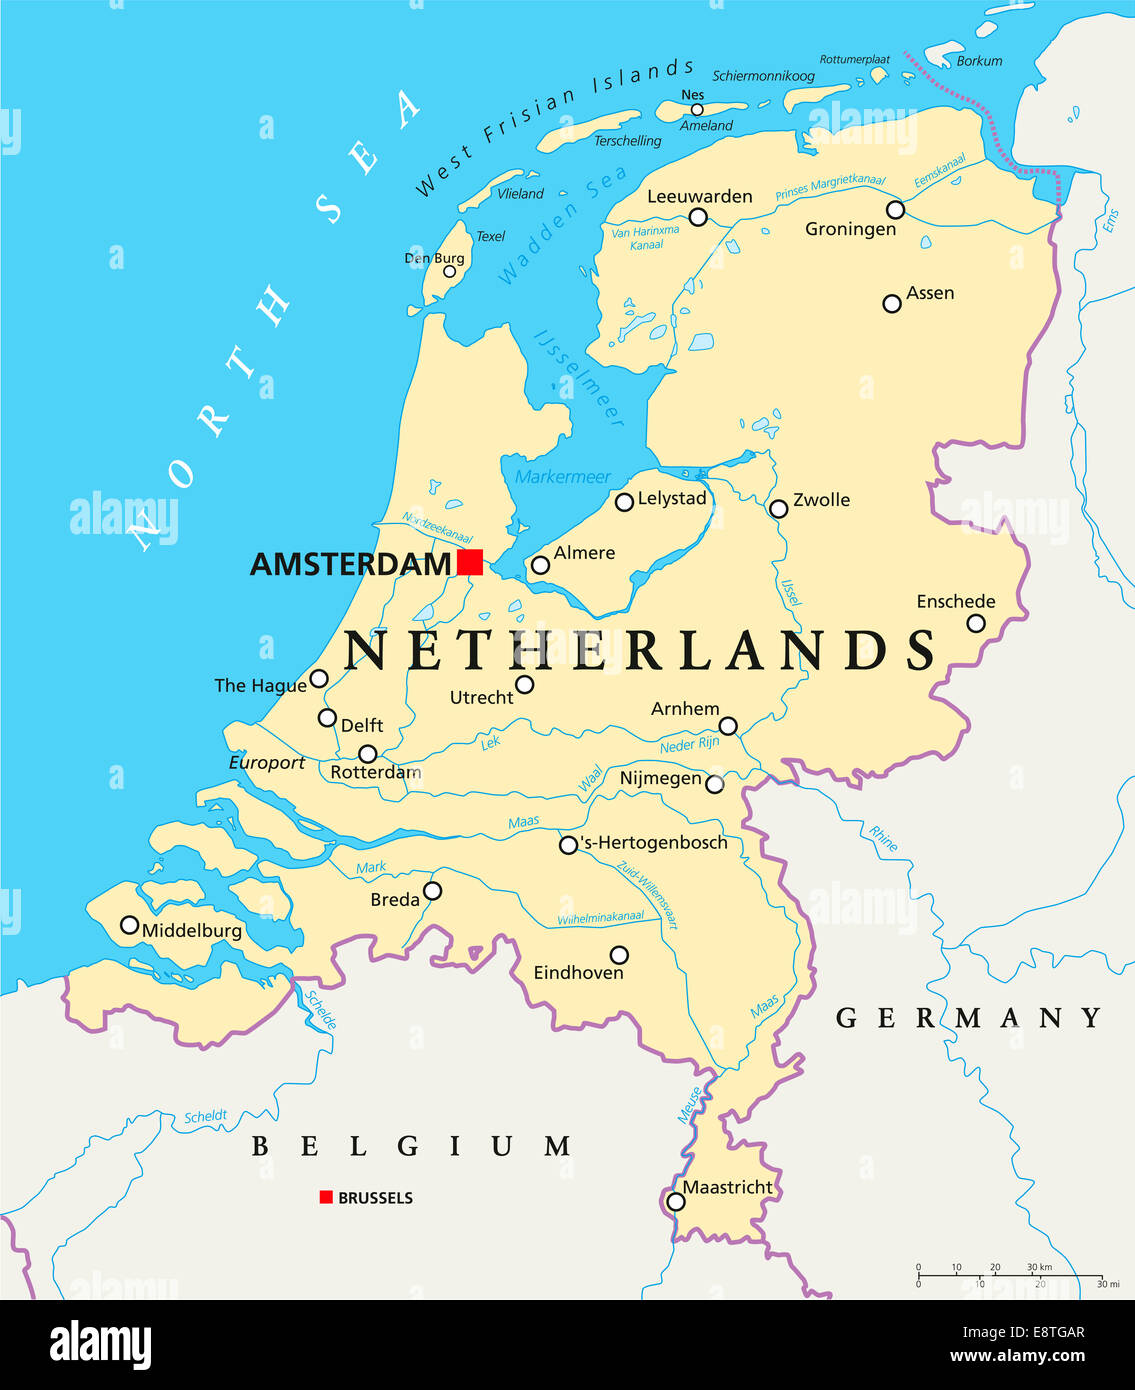 Netherlands Political Map with capital Amsterdam, national borders ...